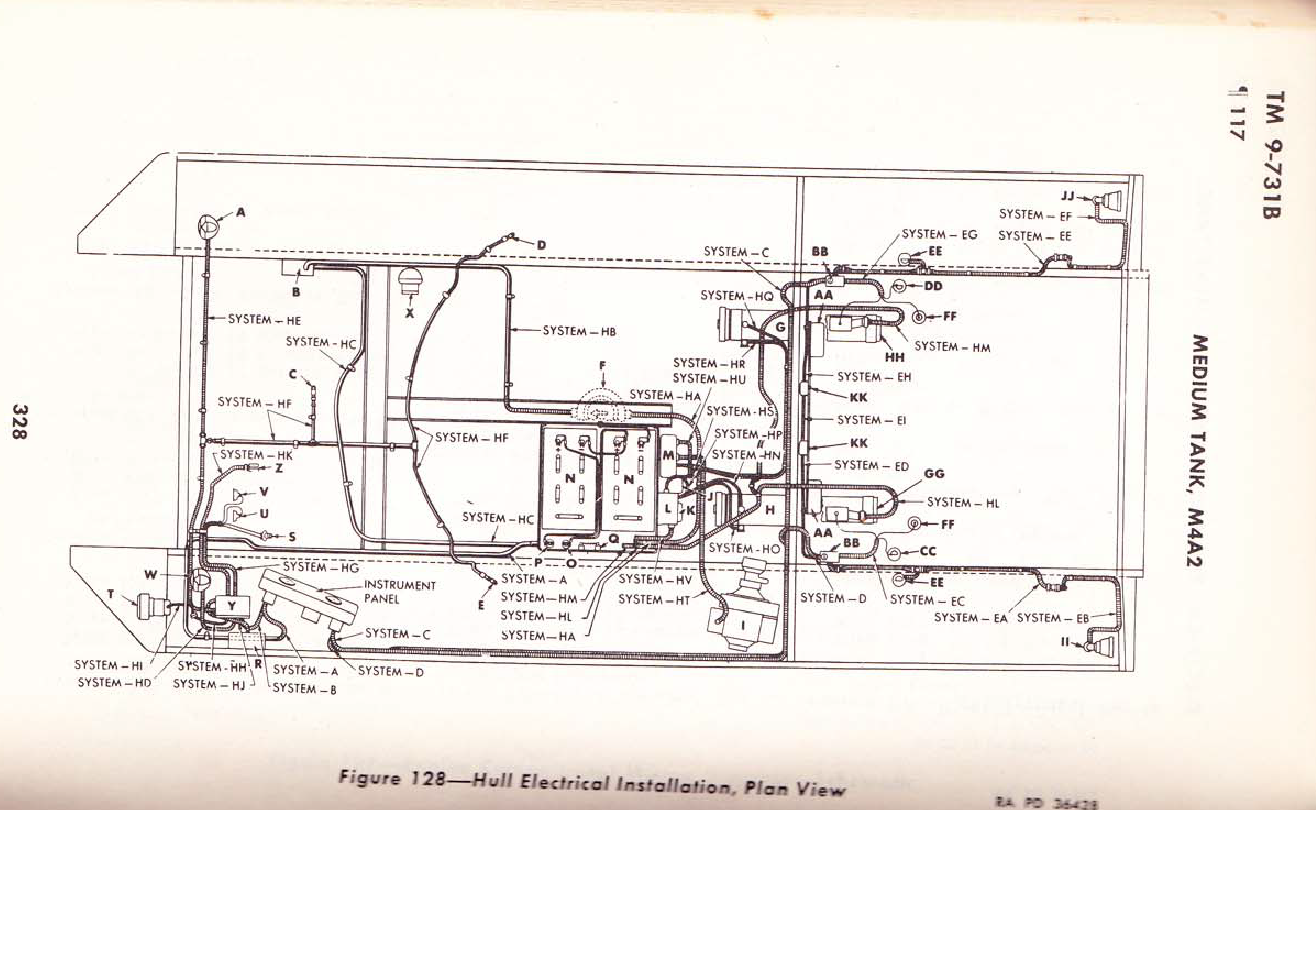 Wiring Diagram For Dual Tanks Page 4 And Schematics 1978 Chevy Truck Gas Tank 1986 House Symbols Source Auxiliary Generator The Sherman Site Rh Trmantank Com